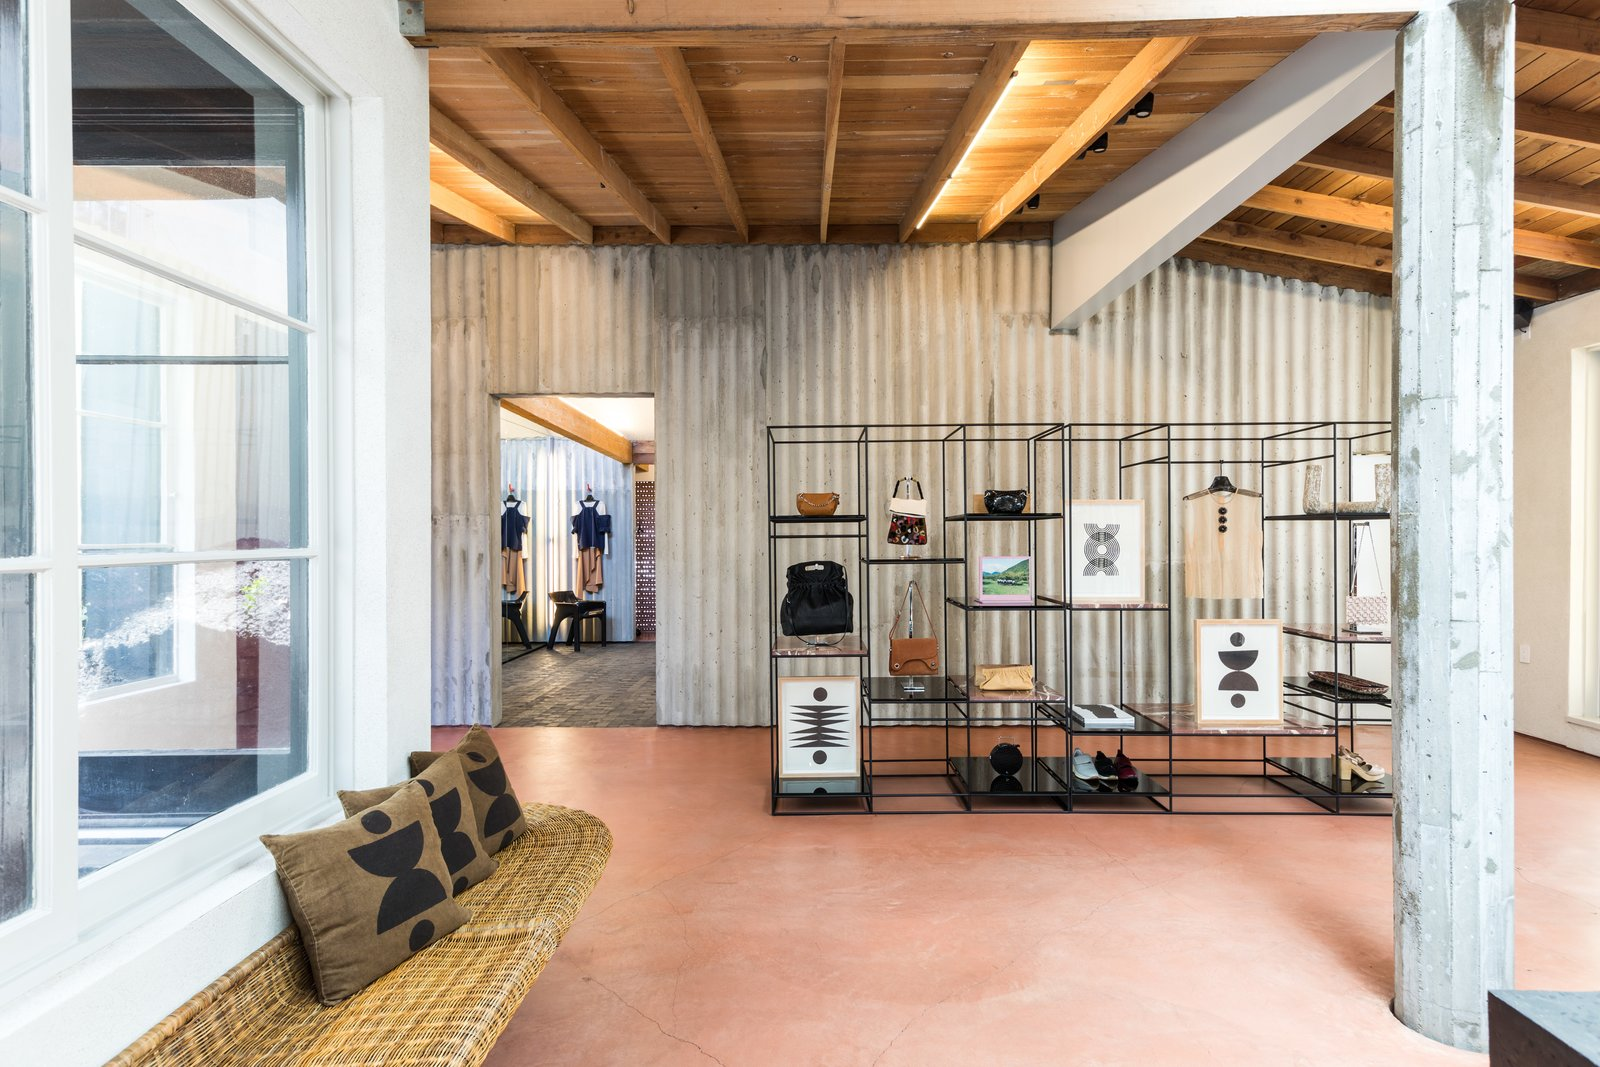 Comey's shop features terra-cotta-colored floors, wood beam ceilings, skylights and a wraparound wicker bench—the perfect setting for Block Shop's new print collection.  Photo 8 of 9 in The Block Shop Sisters Launch Their Framed Woodblock Prints at Rachel Comey's L.A. Boutique